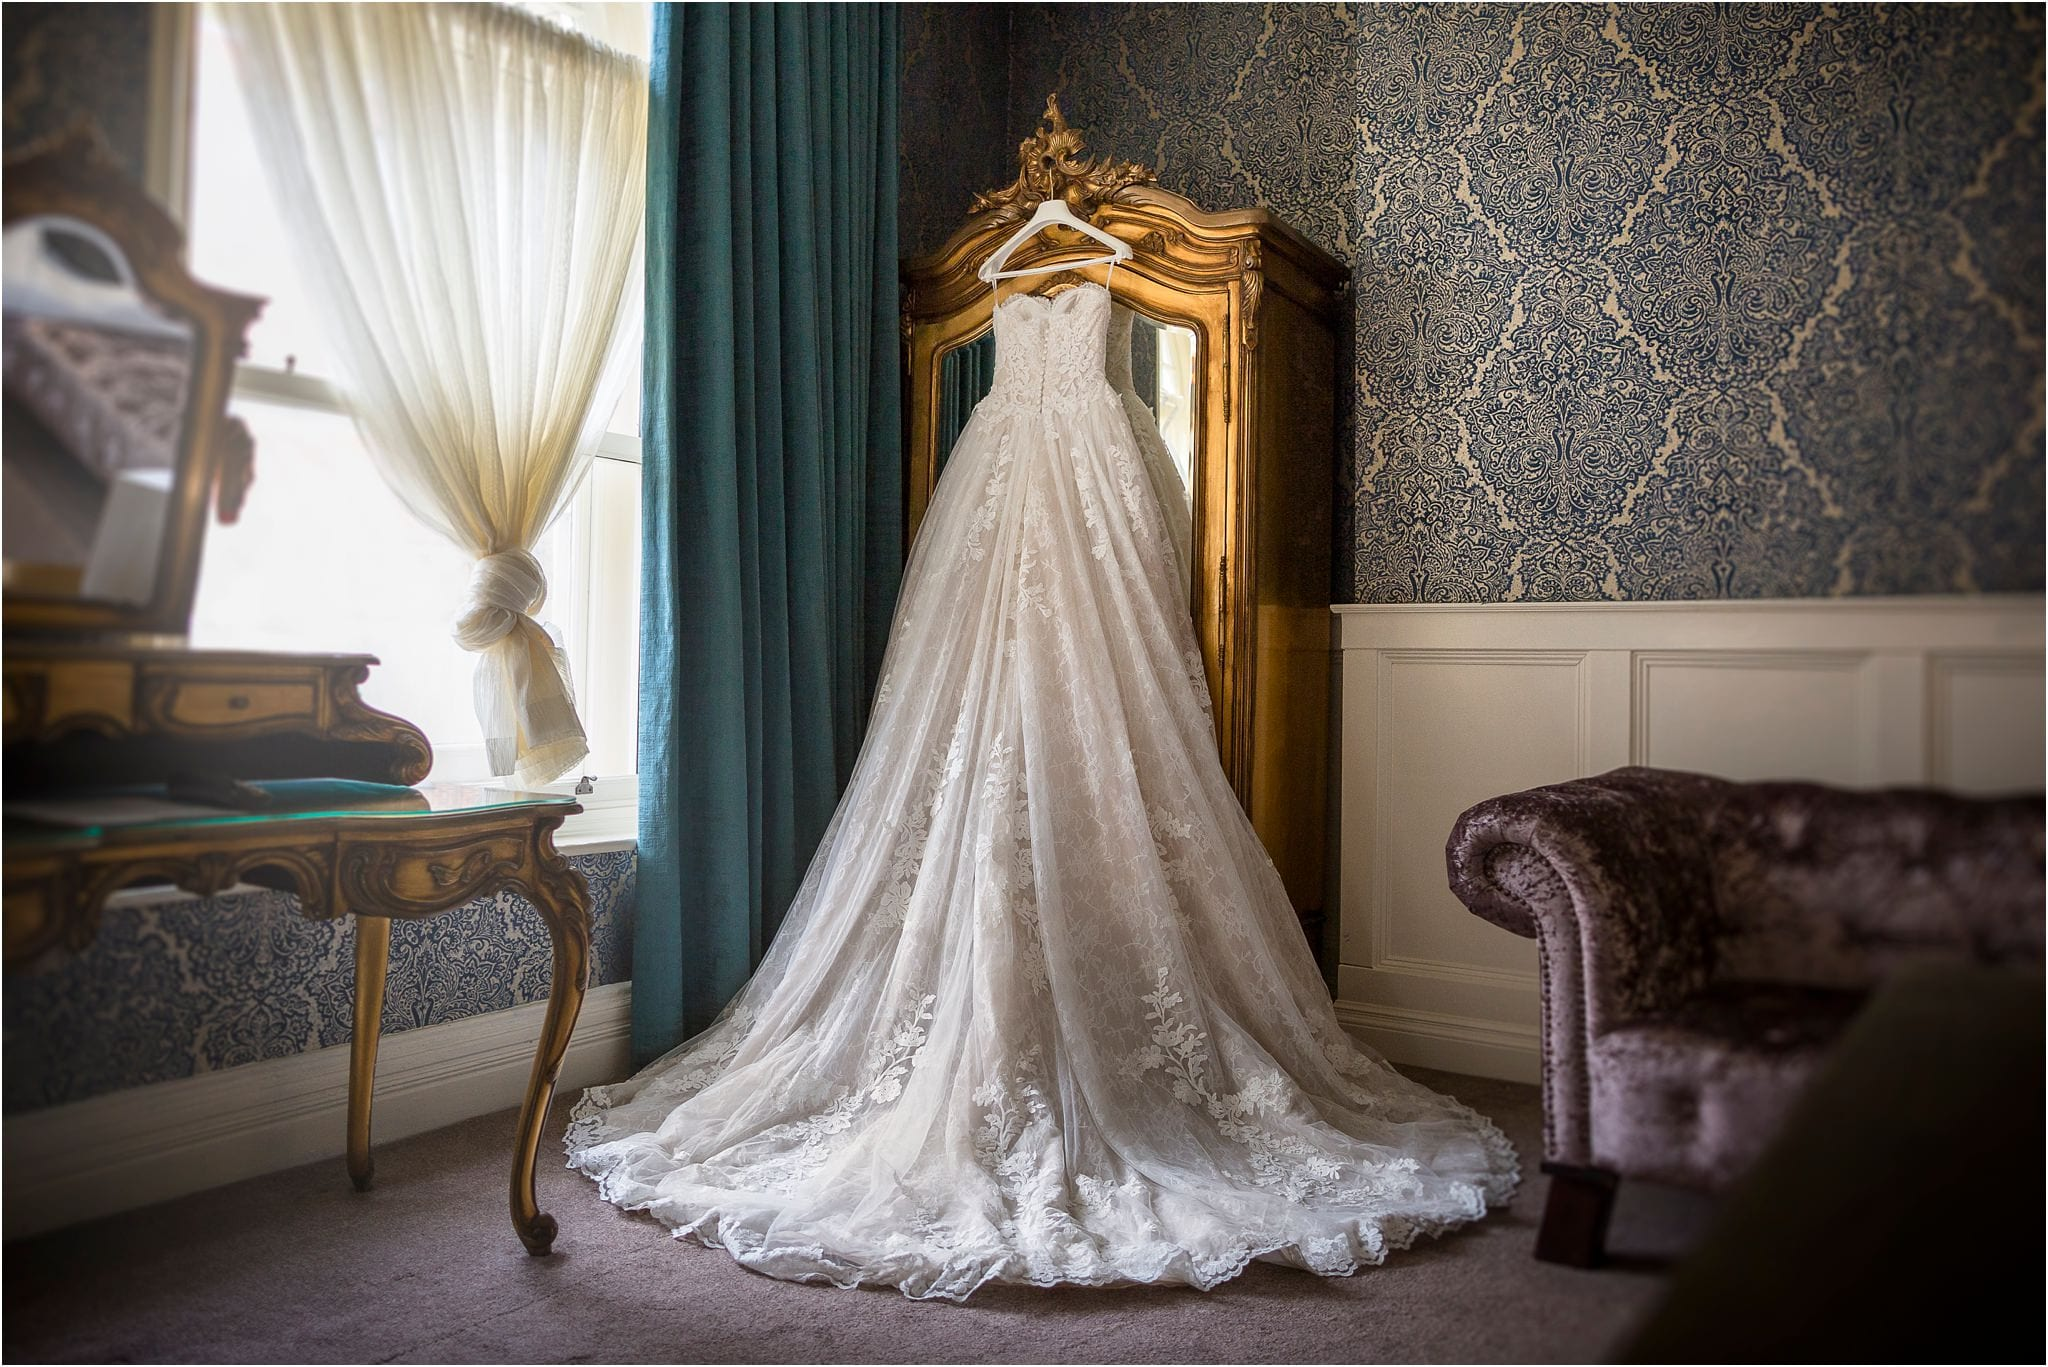 pronovias dress at a cardiff castle wedding